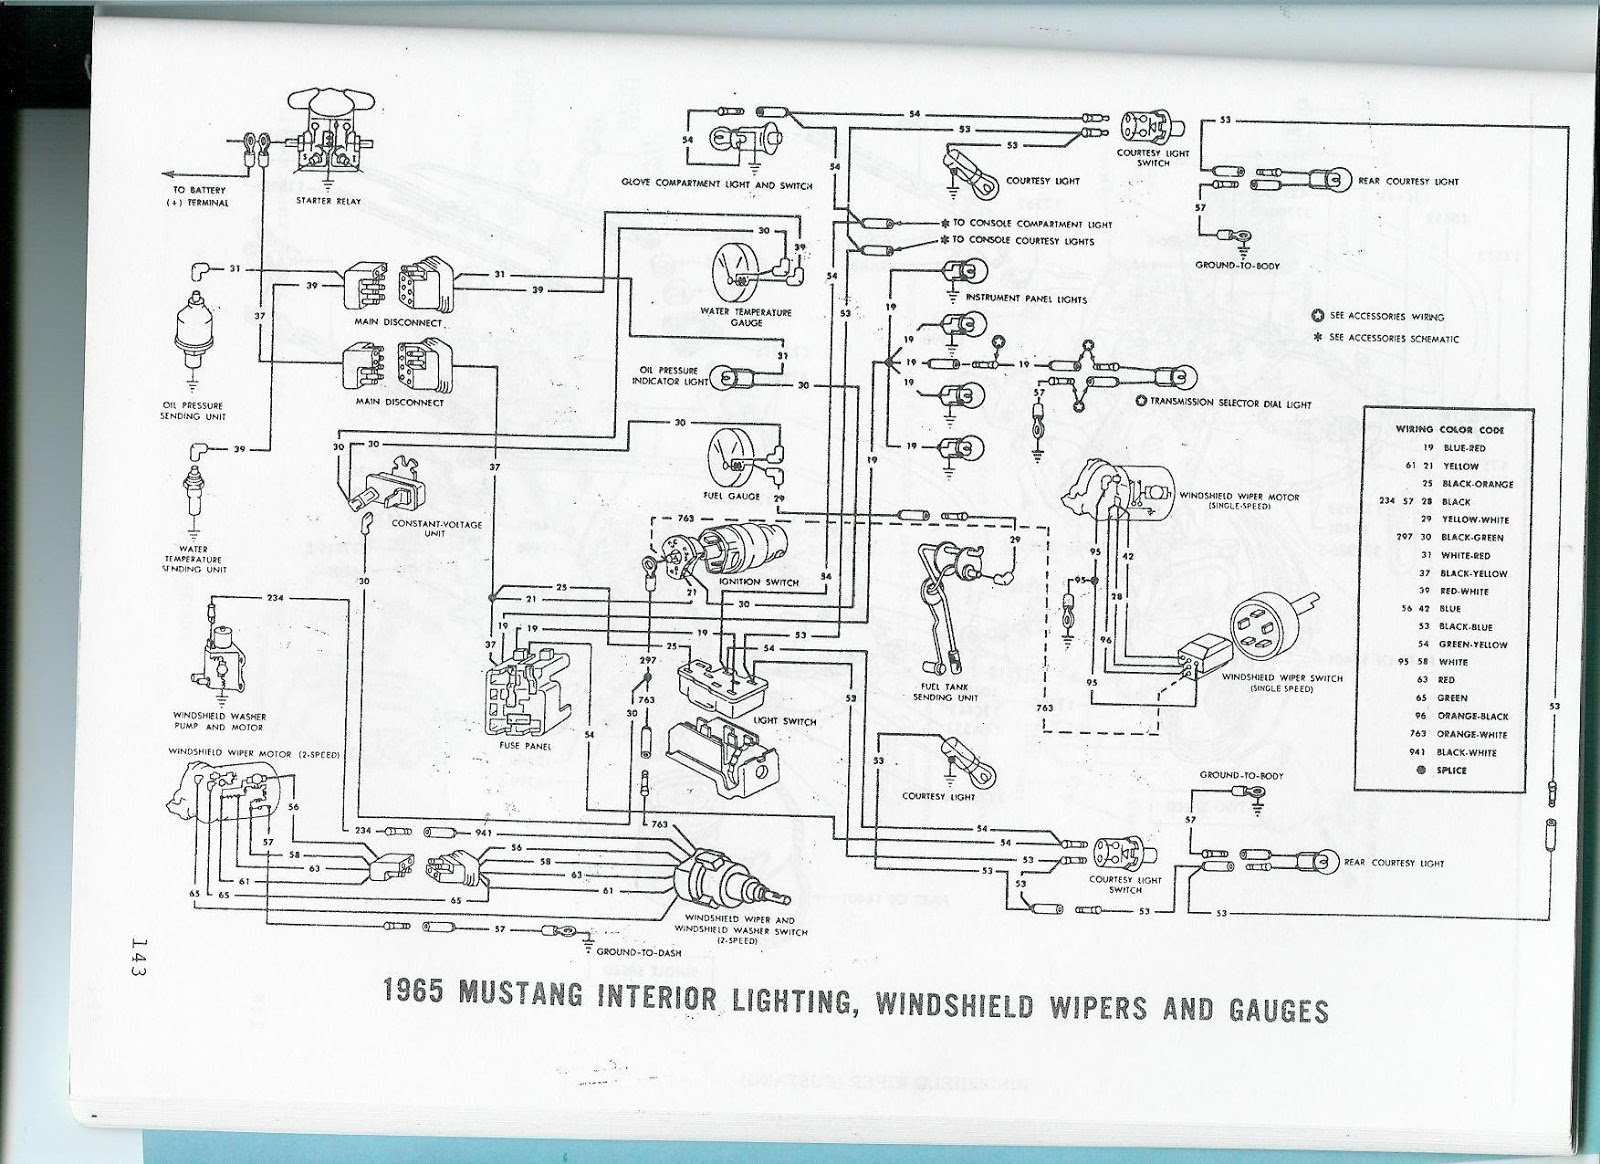 1970 Pontiac Wiring Diagram 67 Coronet Library Care Feeding Ponies 1965 Mustang Diagrams Ford 1969 Gto 1967